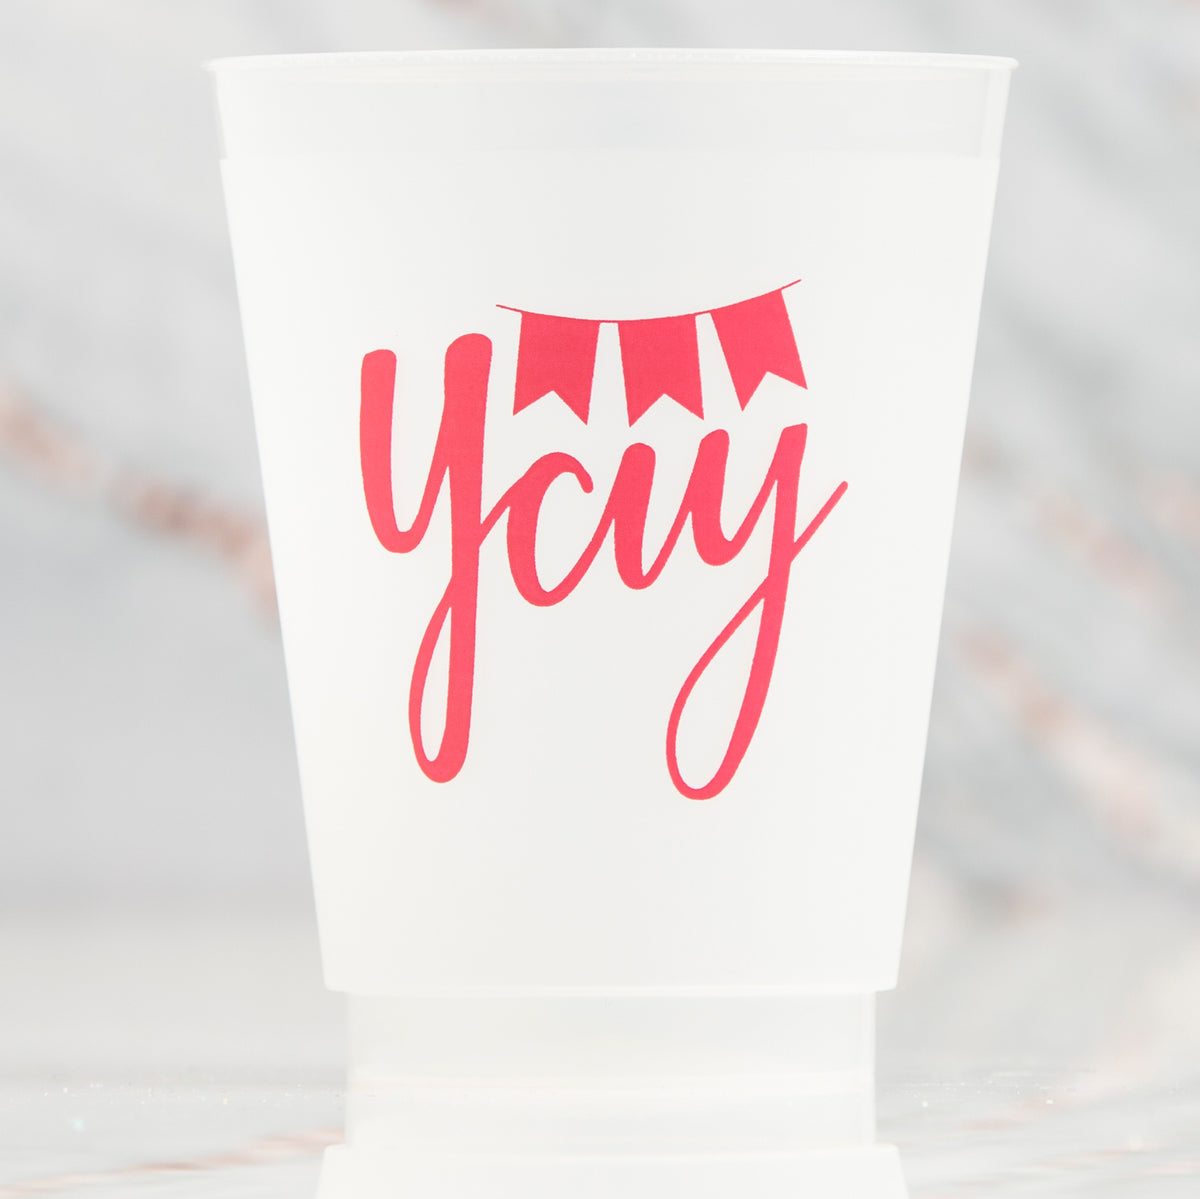 16 oz. Reusable Yay Frosted Cups